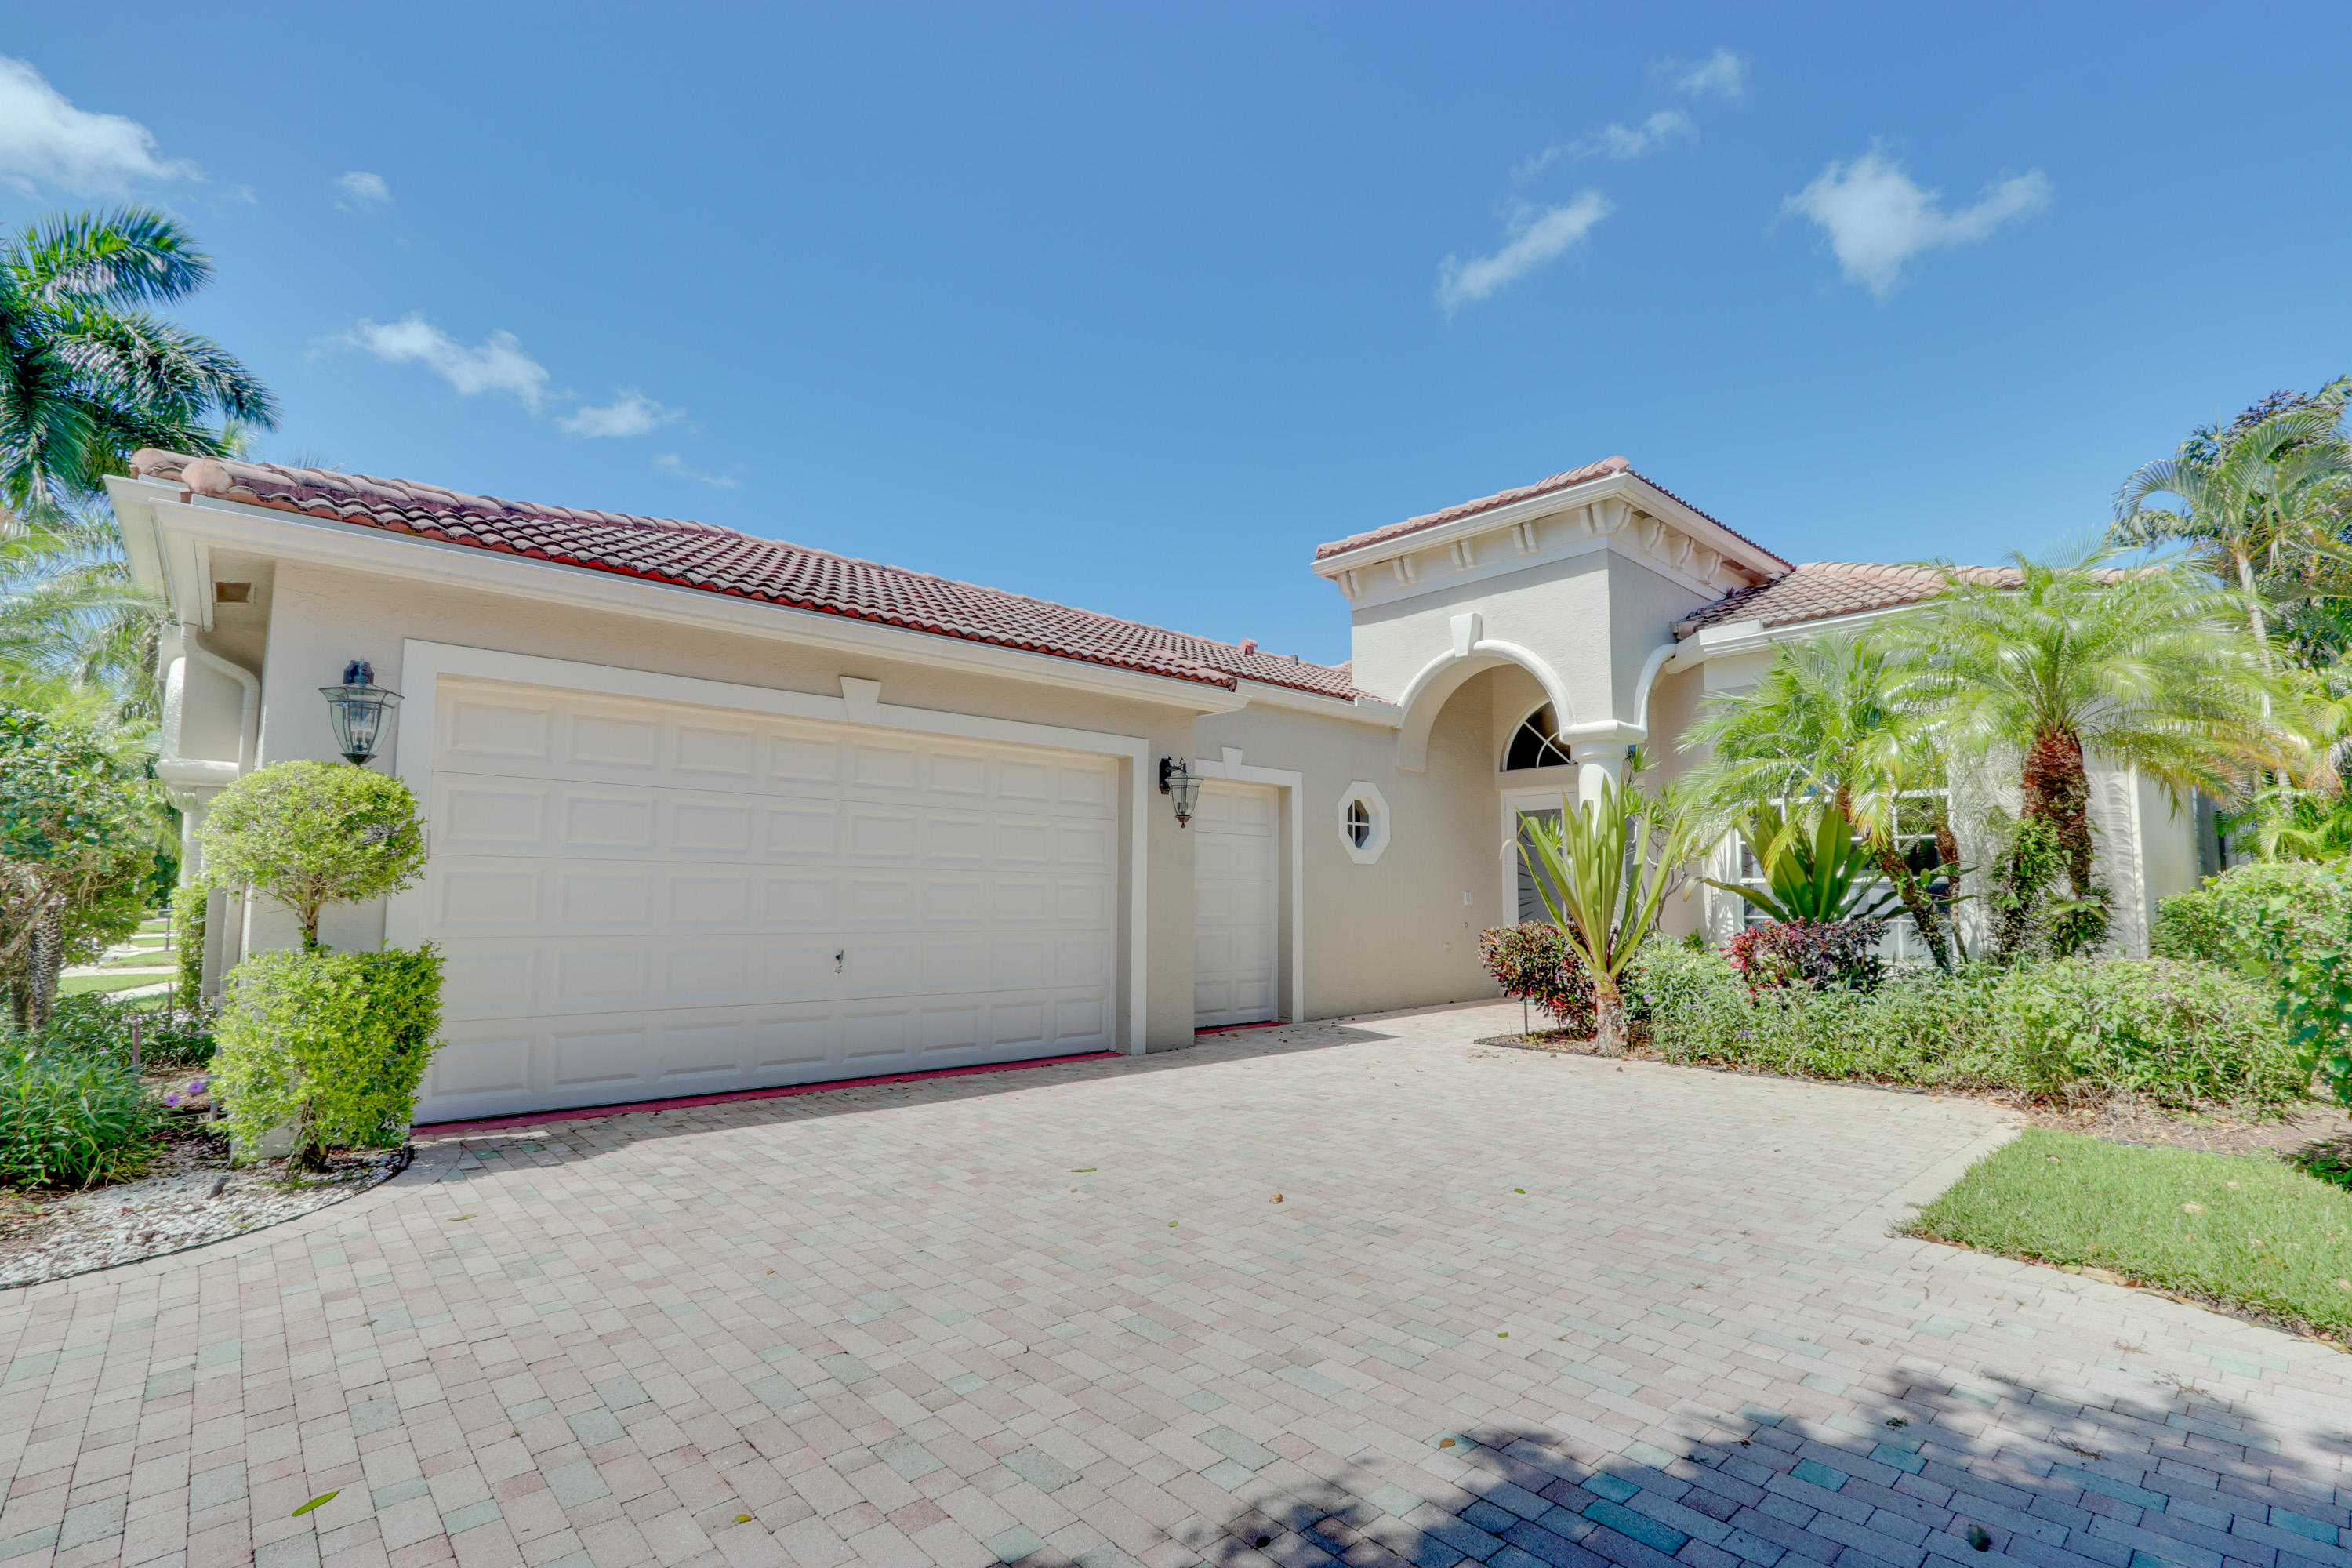 Home for sale in Wycliffe - Manchester Lakes Wellington Florida